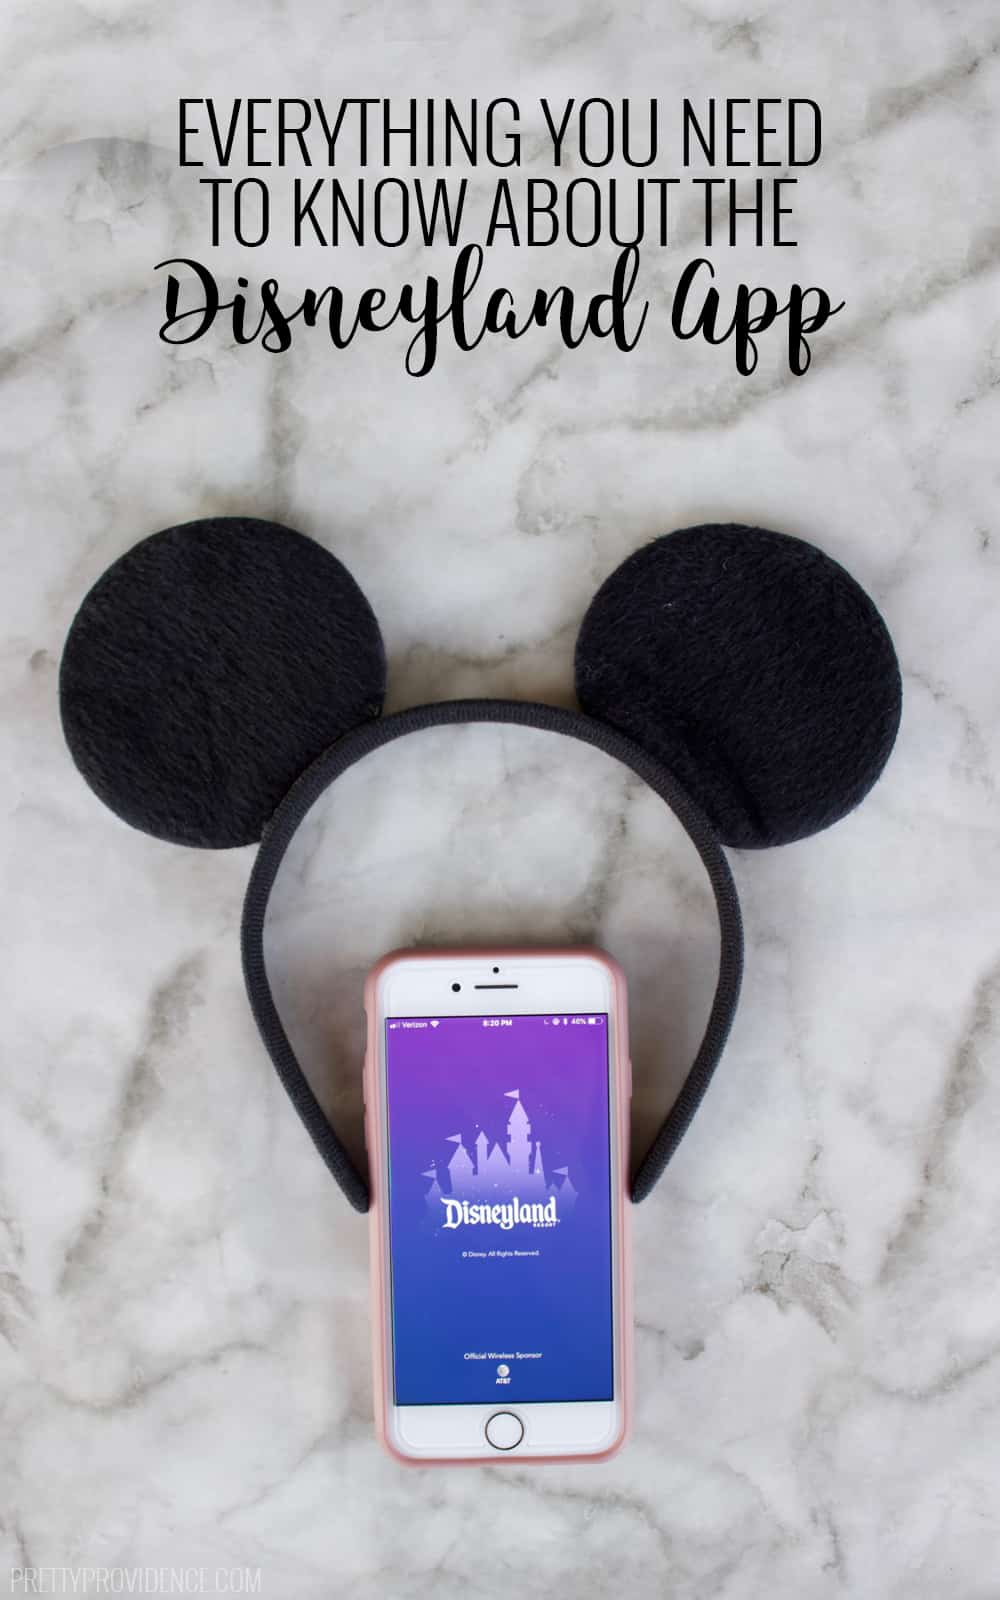 everything-you-need-to-know-about-the-disneyland-app